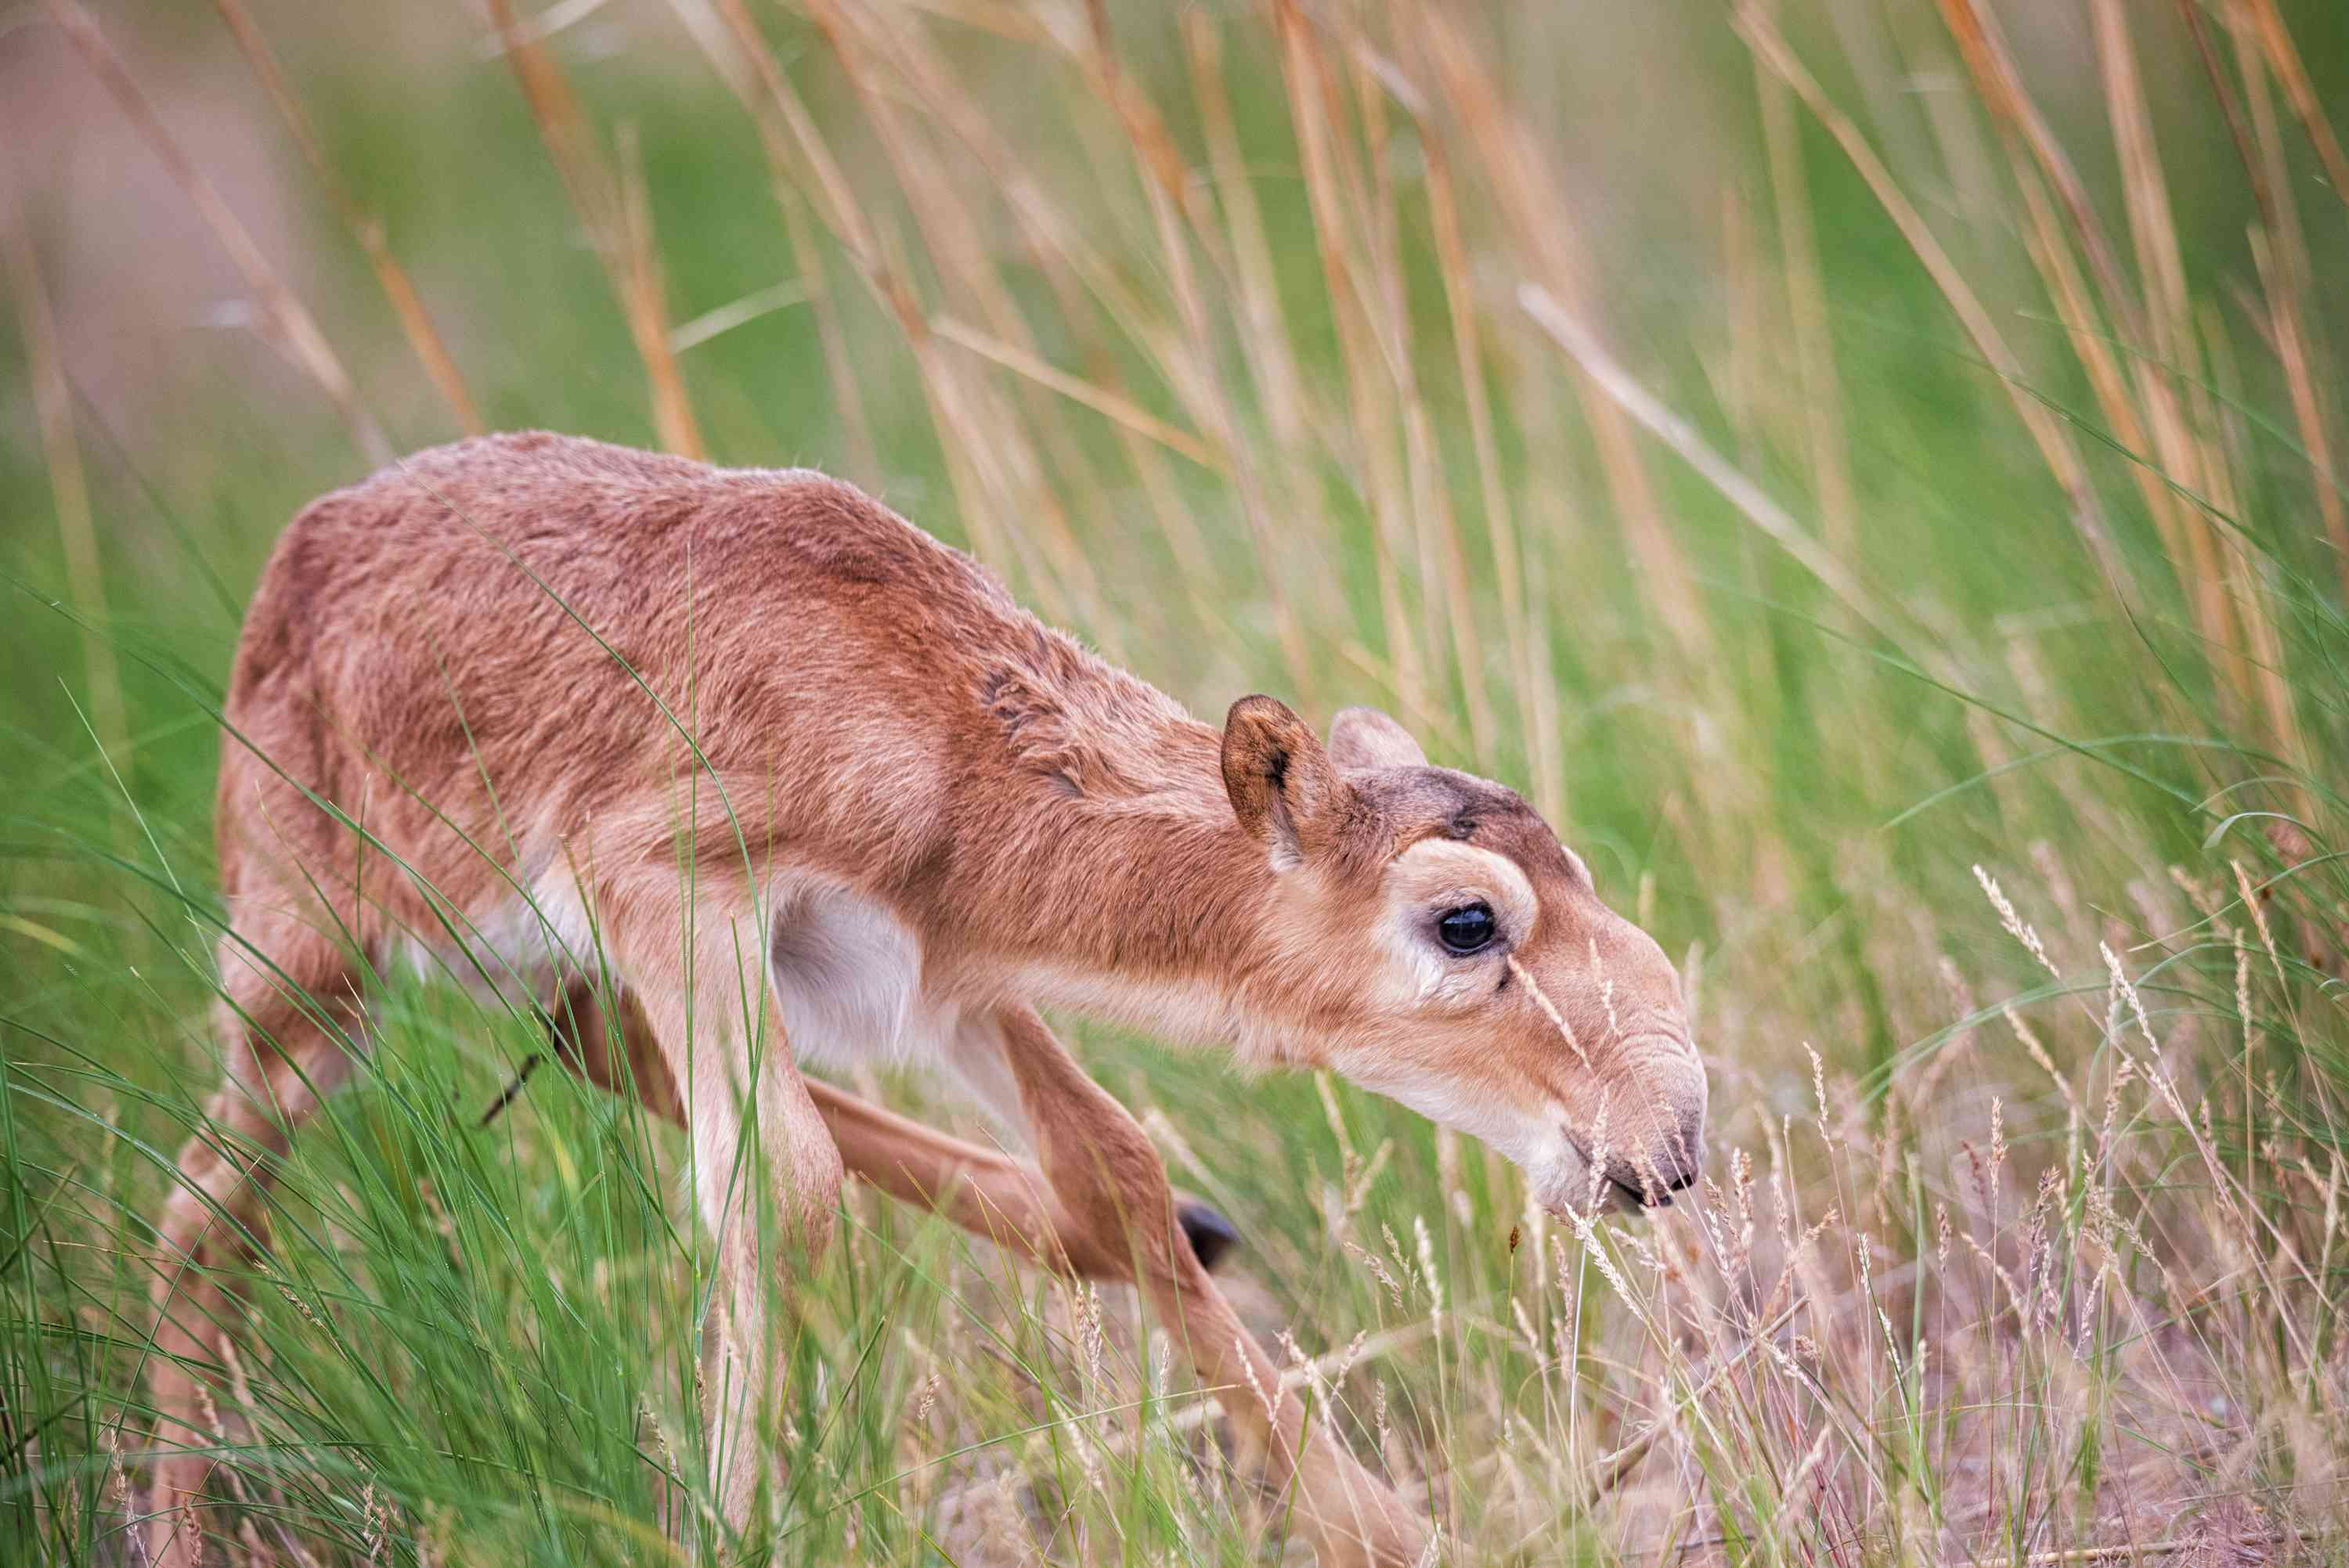 A young saiga kid in Russia